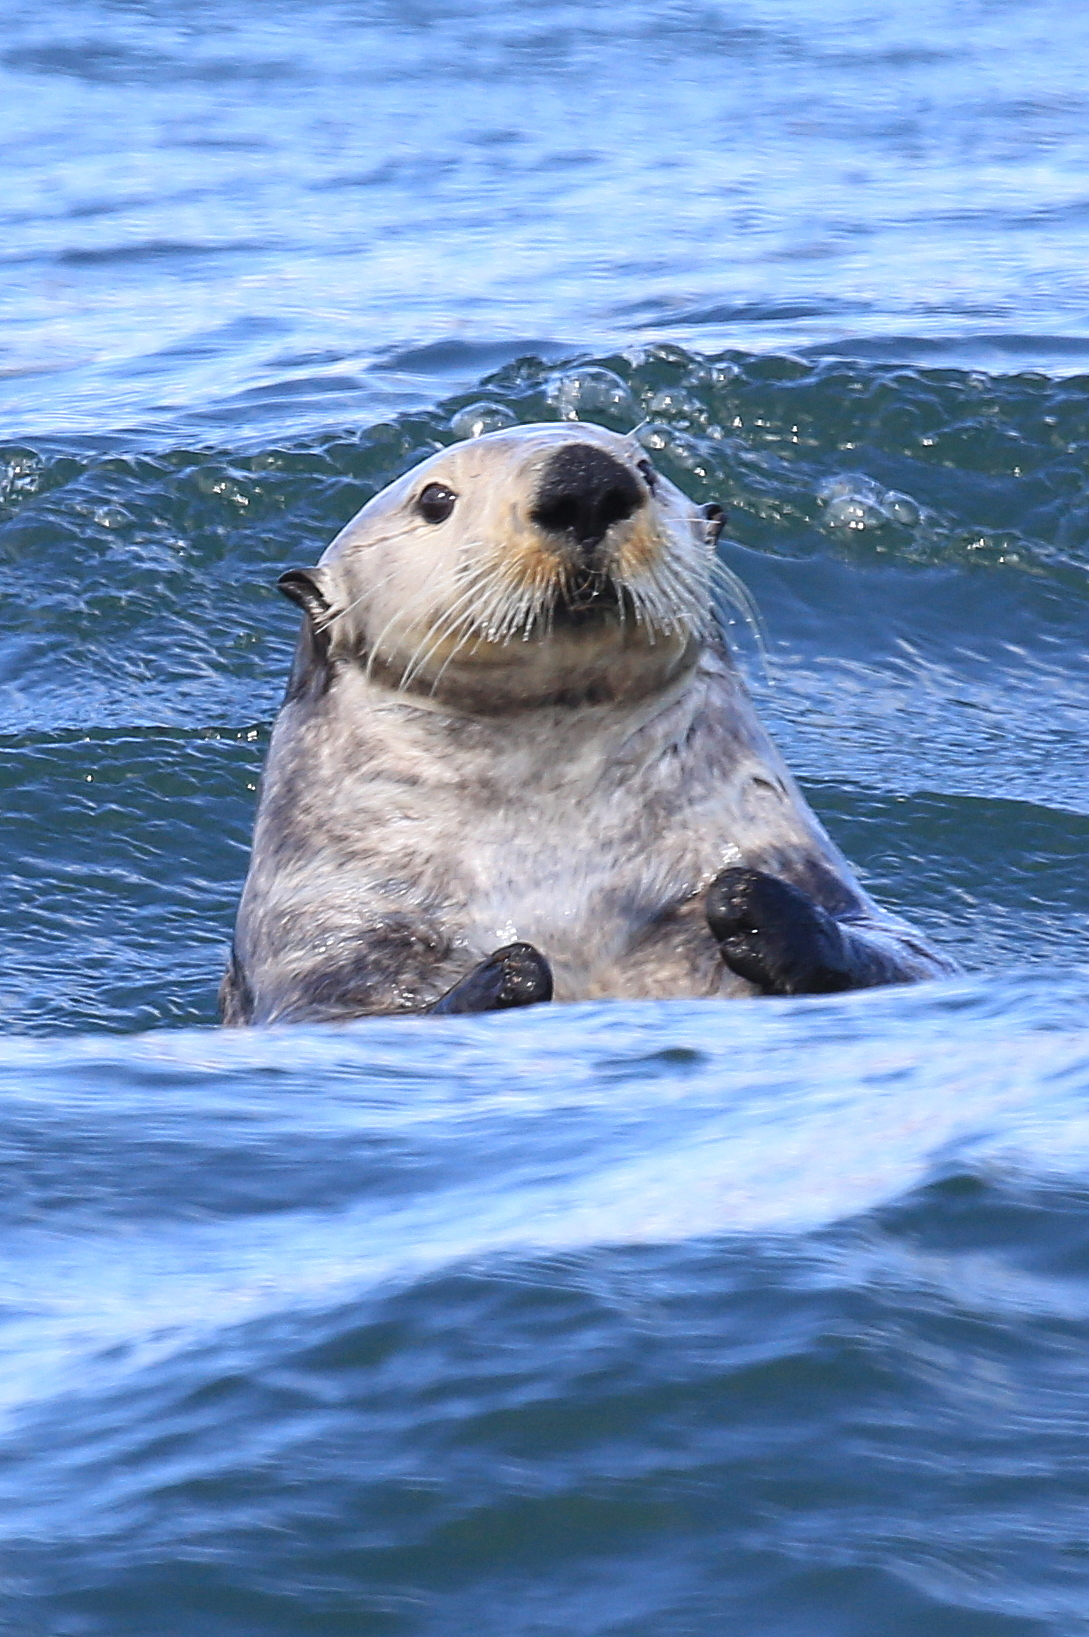 Sea Otter Bobs with the Waves